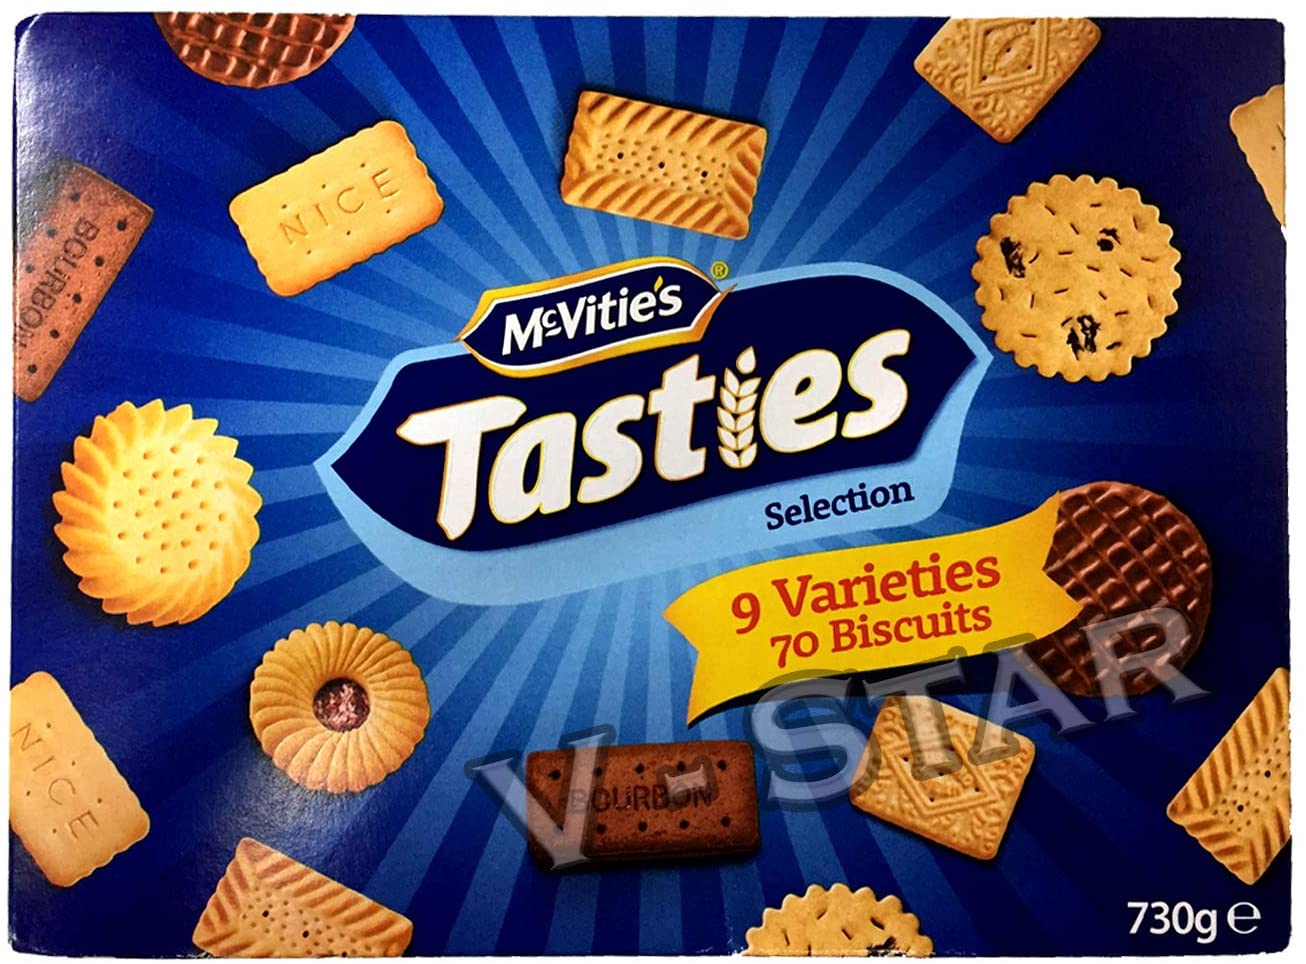 MCVITIE'S TASTIES Selection 730g – 9 Varieties 70 Biscuits Box